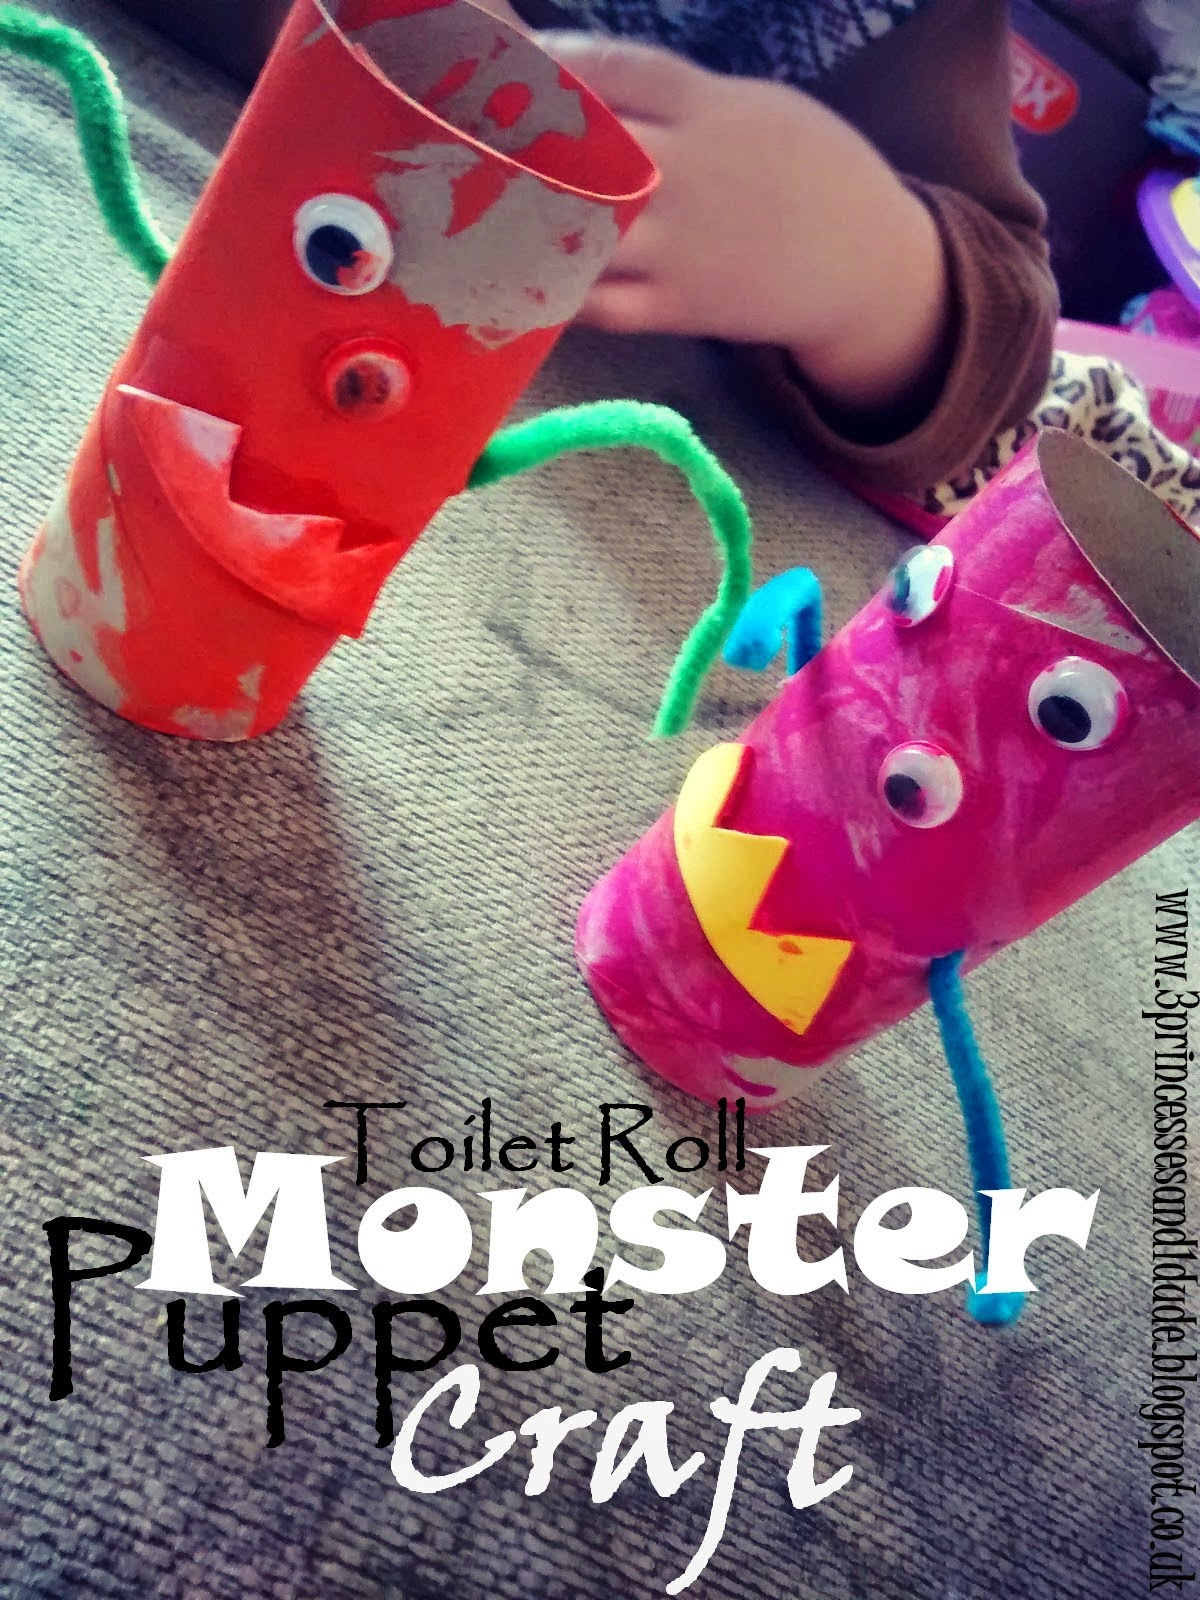 http://3princessesand1dude.blogspot.co.uk/2014/03/monster-puppets.html